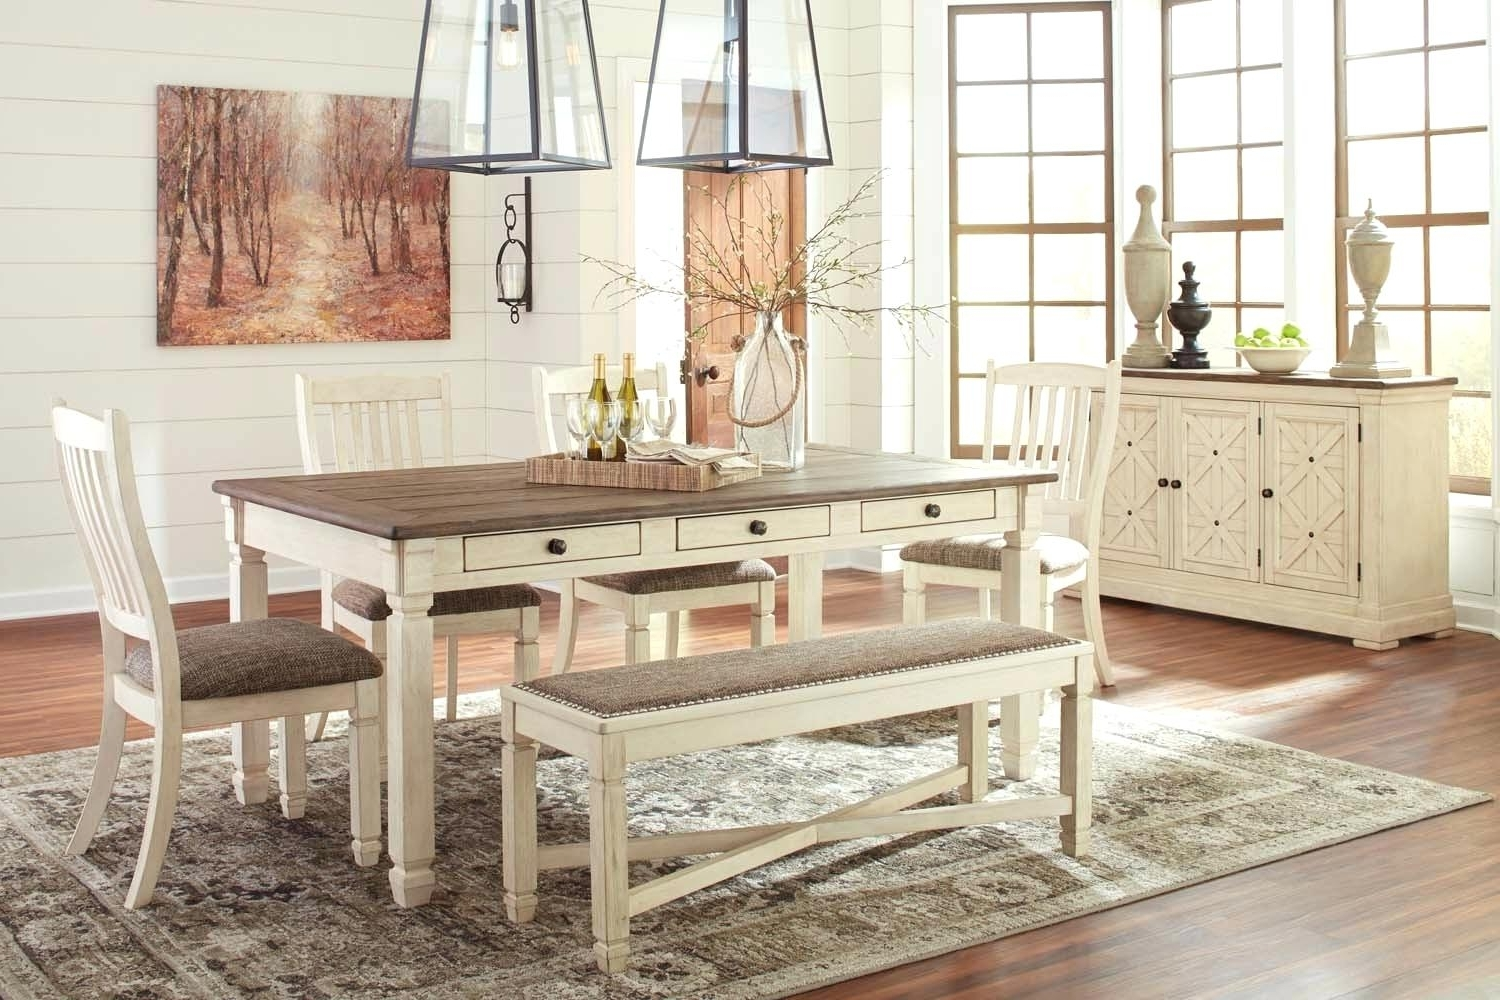 Mallard 6 Piece Extension Dining Sets Regarding Well Liked 6 Piece Dining Room Set Sets Bravo Counter Height Corner Seating (View 17 of 25)